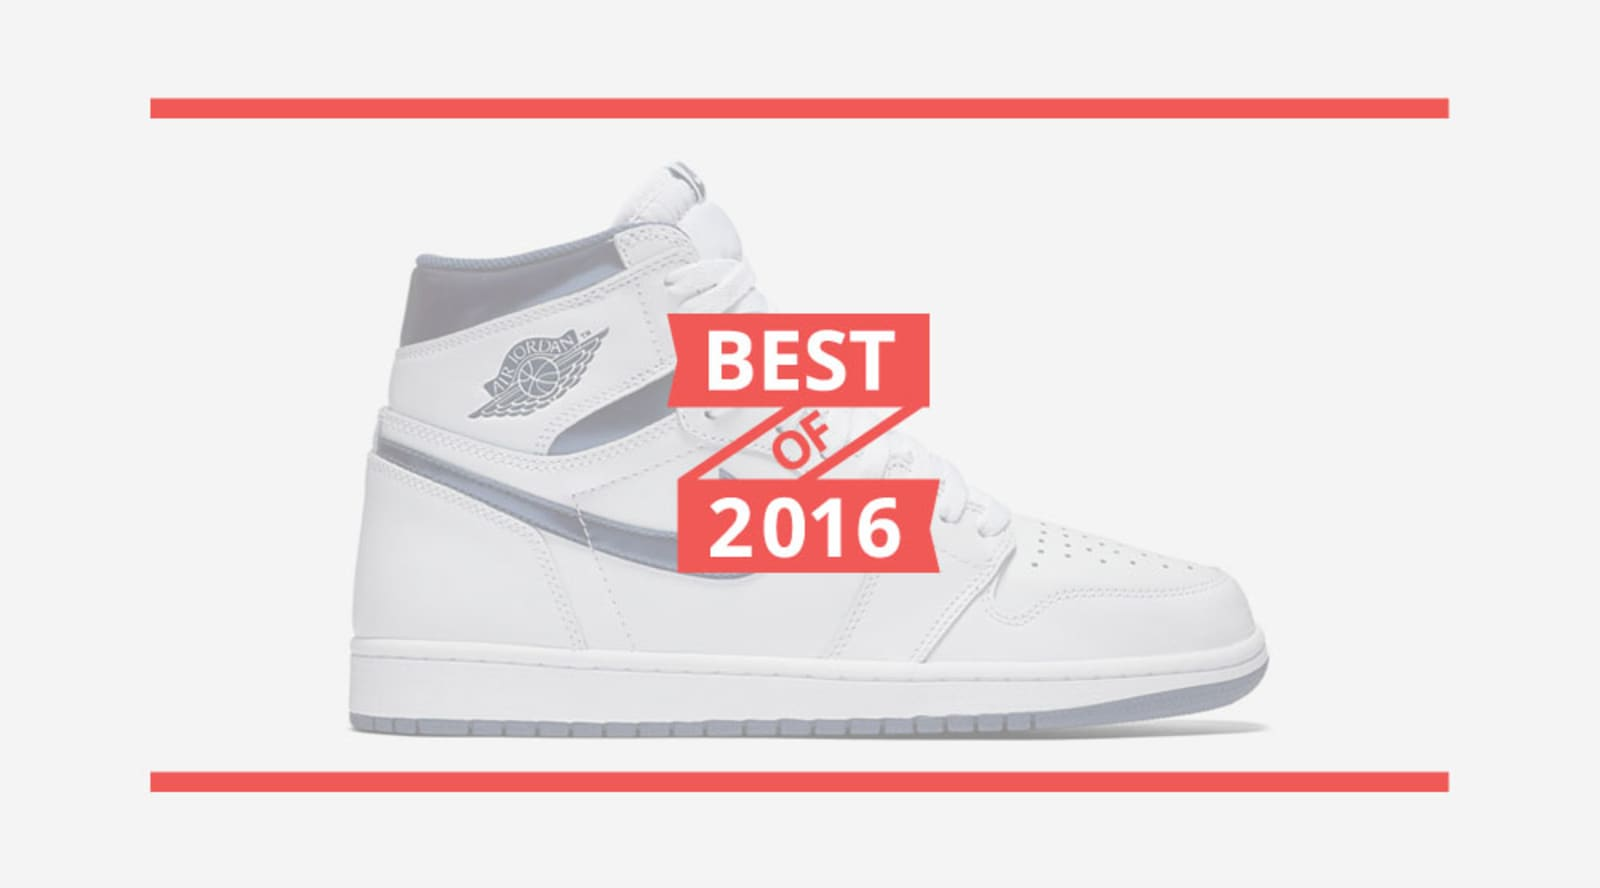 6dd06c0a5 As the year 2016 comes to a close we re reaching out to members of the  community that we respect to get their take on the year in sneakers.